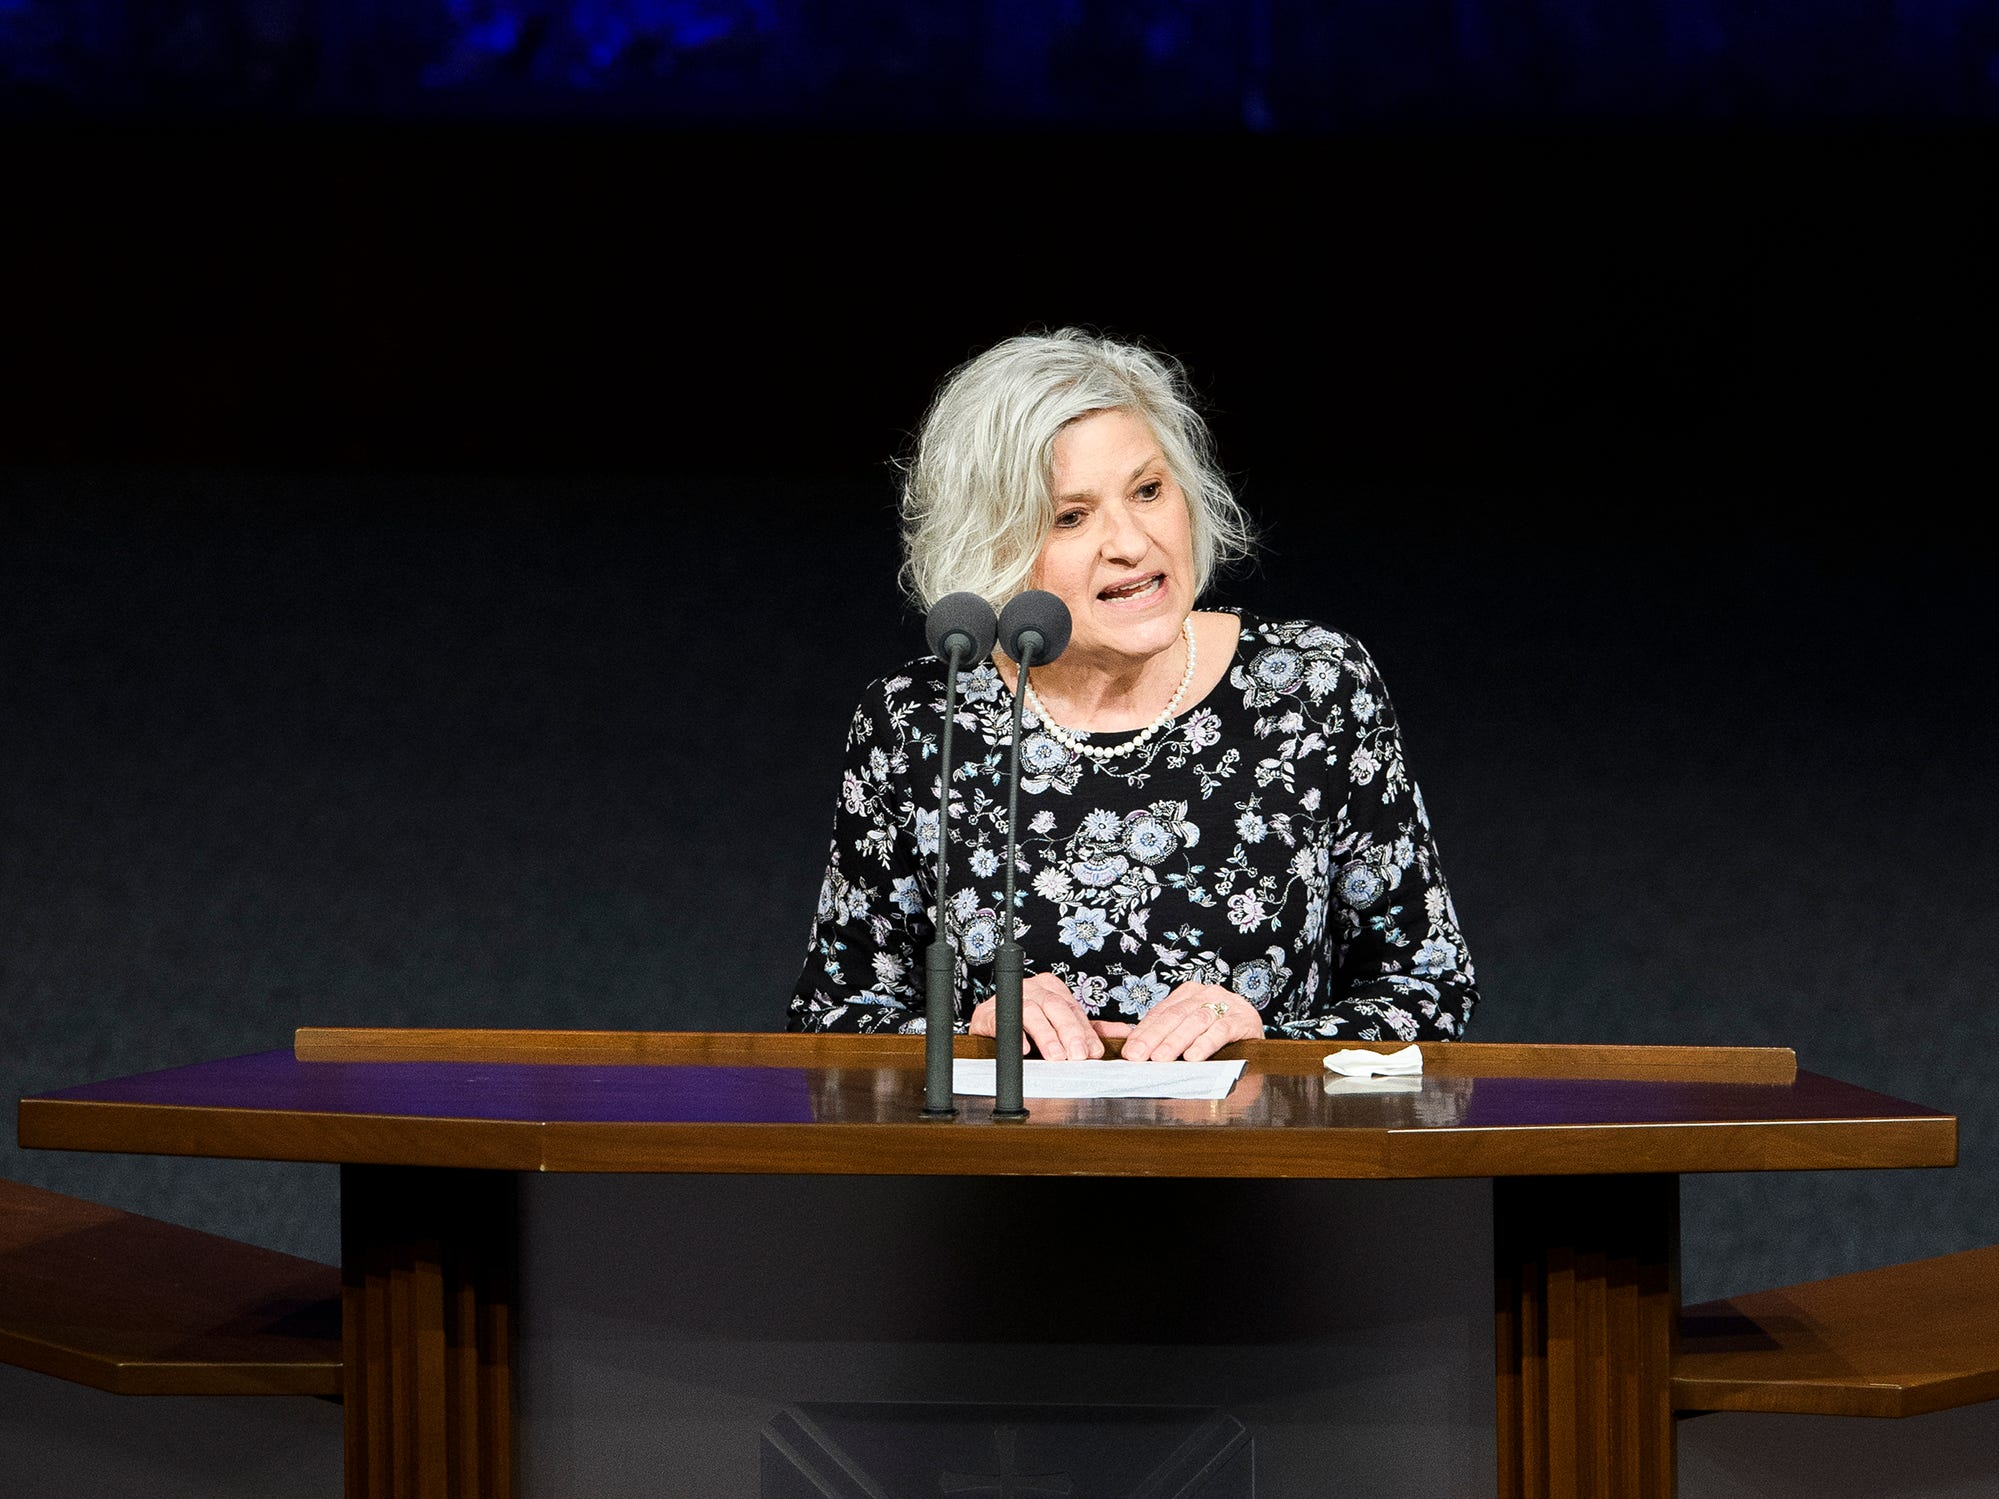 Jan Reimers speaks about the life of Beneth Peters Jones during her funeral service at Bob Jones University on Wednesday, Feb. 6, 2019.